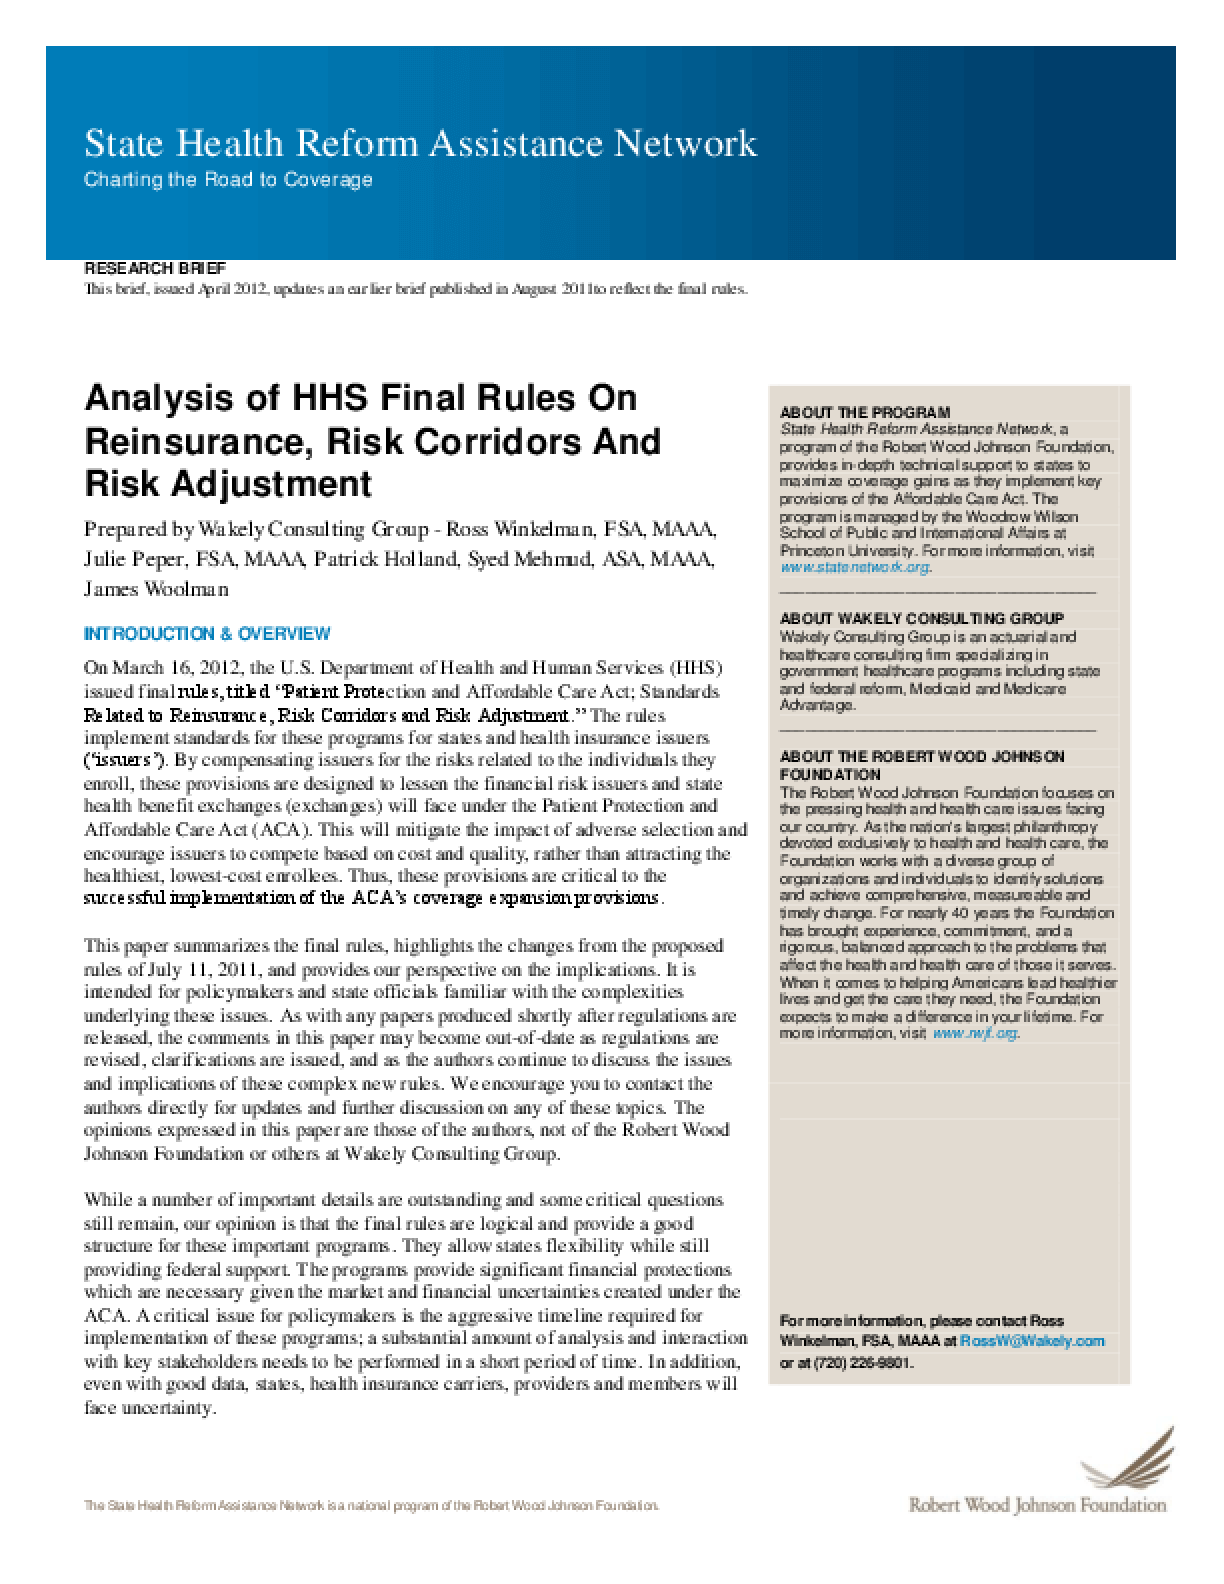 Analysis of HHS Final Rules on Reinsurance, Risk Corridors and Risk Adjustment